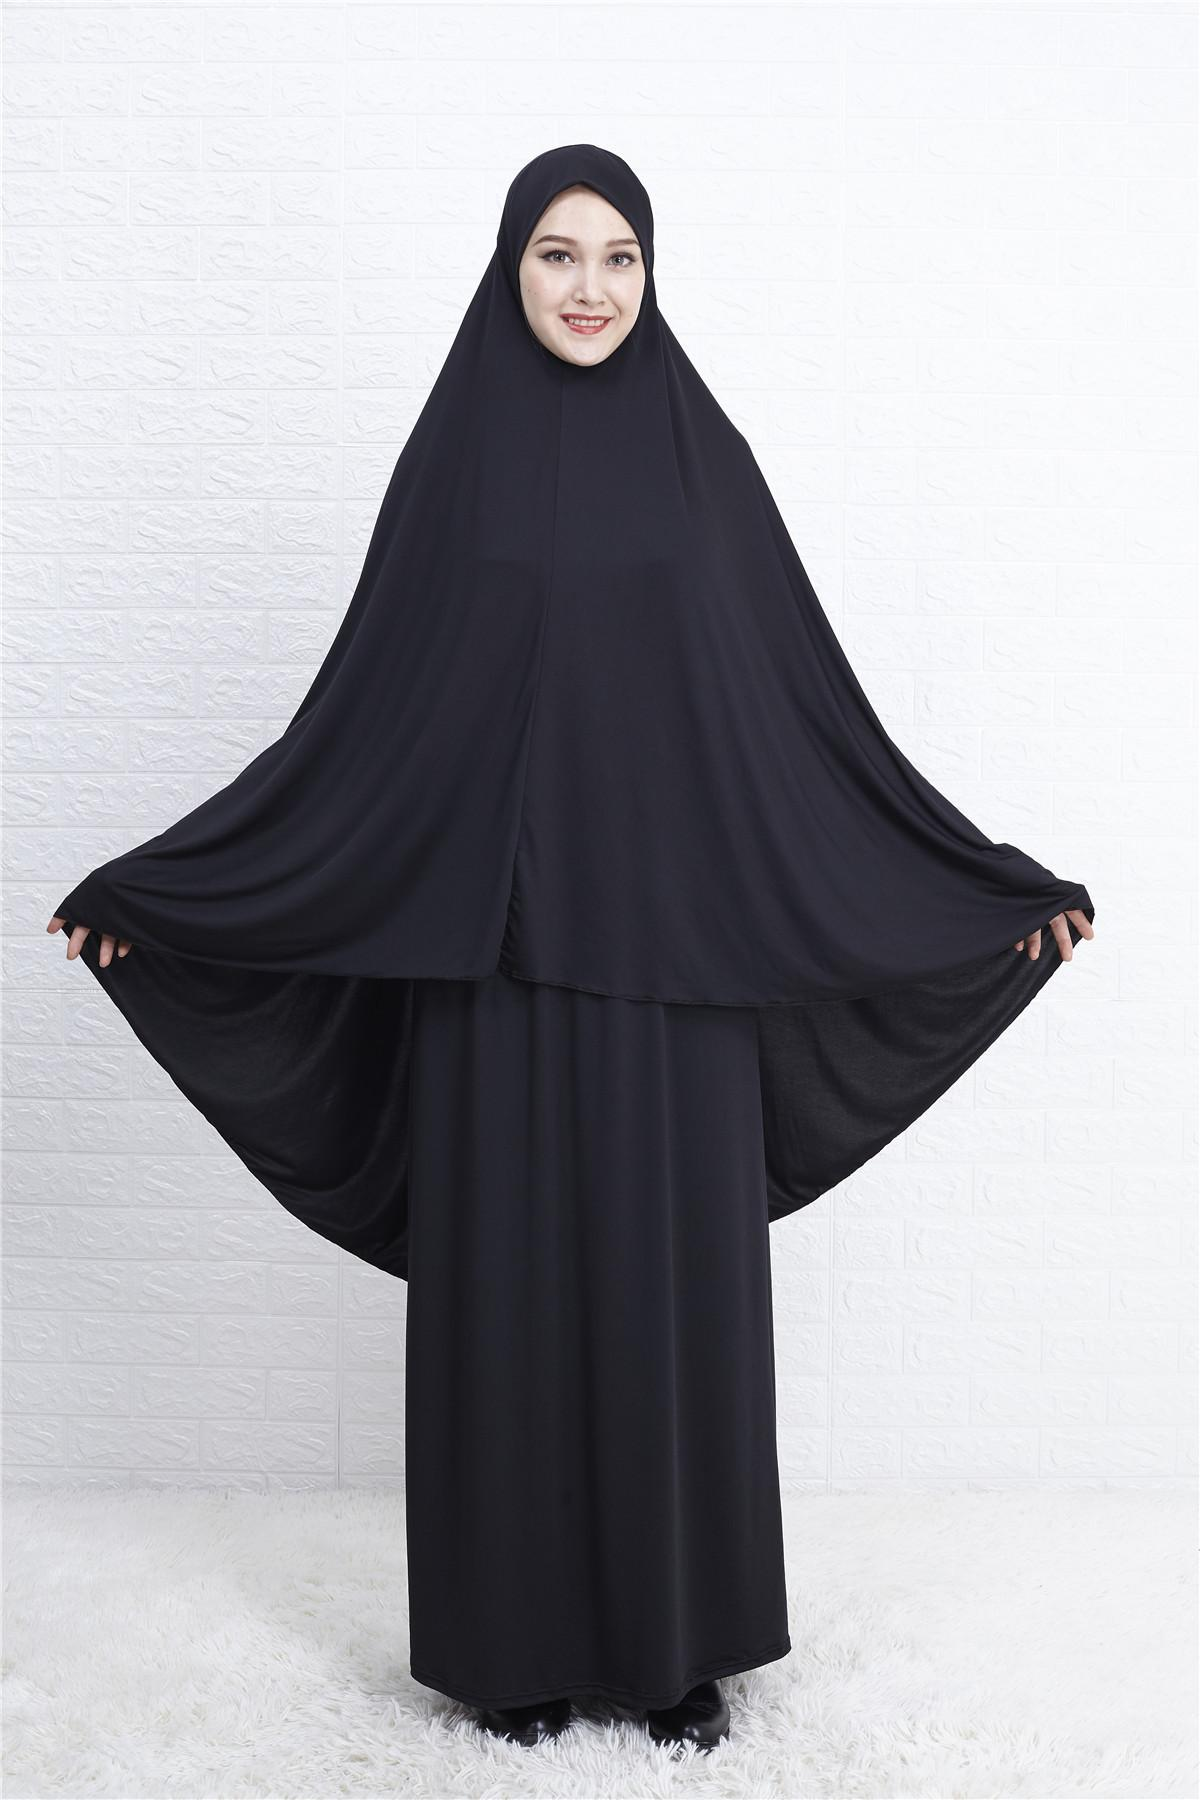 Women Prayer Clothes Set Muslim Abaya Jilbab Long Dress  Hijab Scarf Islamic Ramadan Overhead Full Cover Worship Service Middle